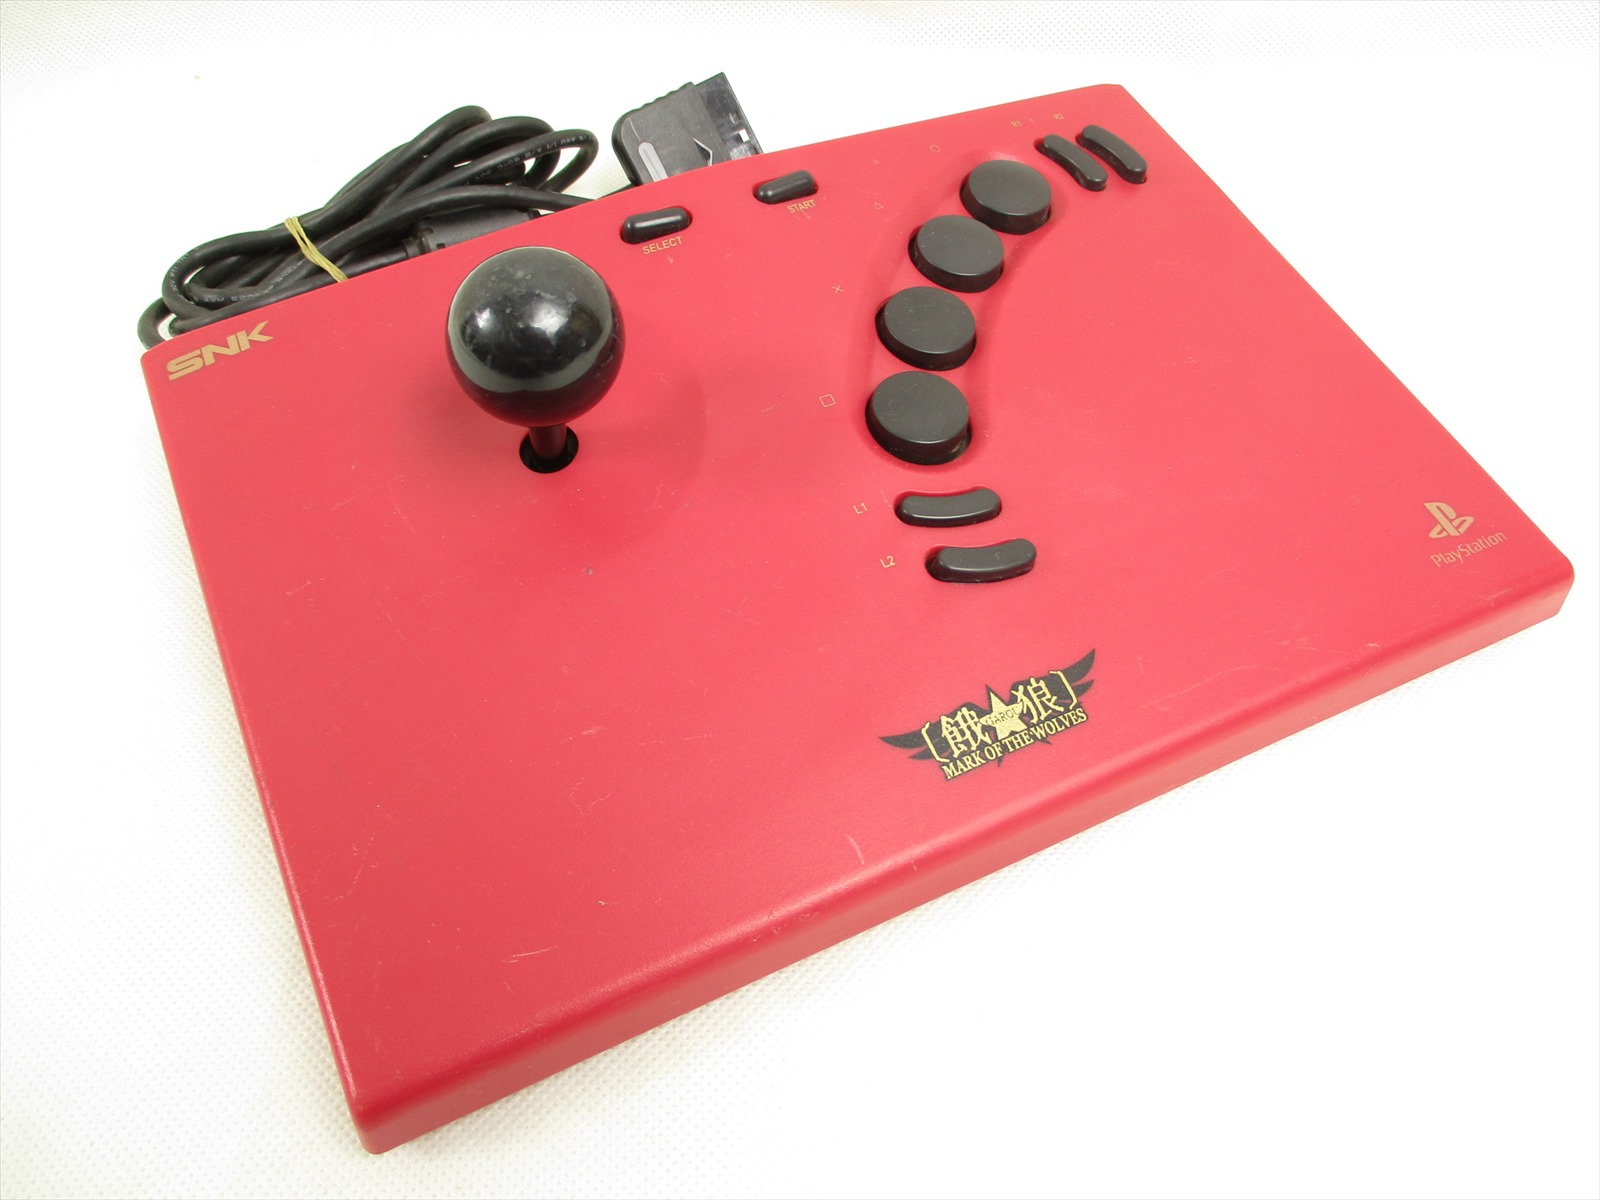 NEO GEO STICK 2 Controller Garou Mark Wolves Tested Playstation 2 PS2 2713 Japan